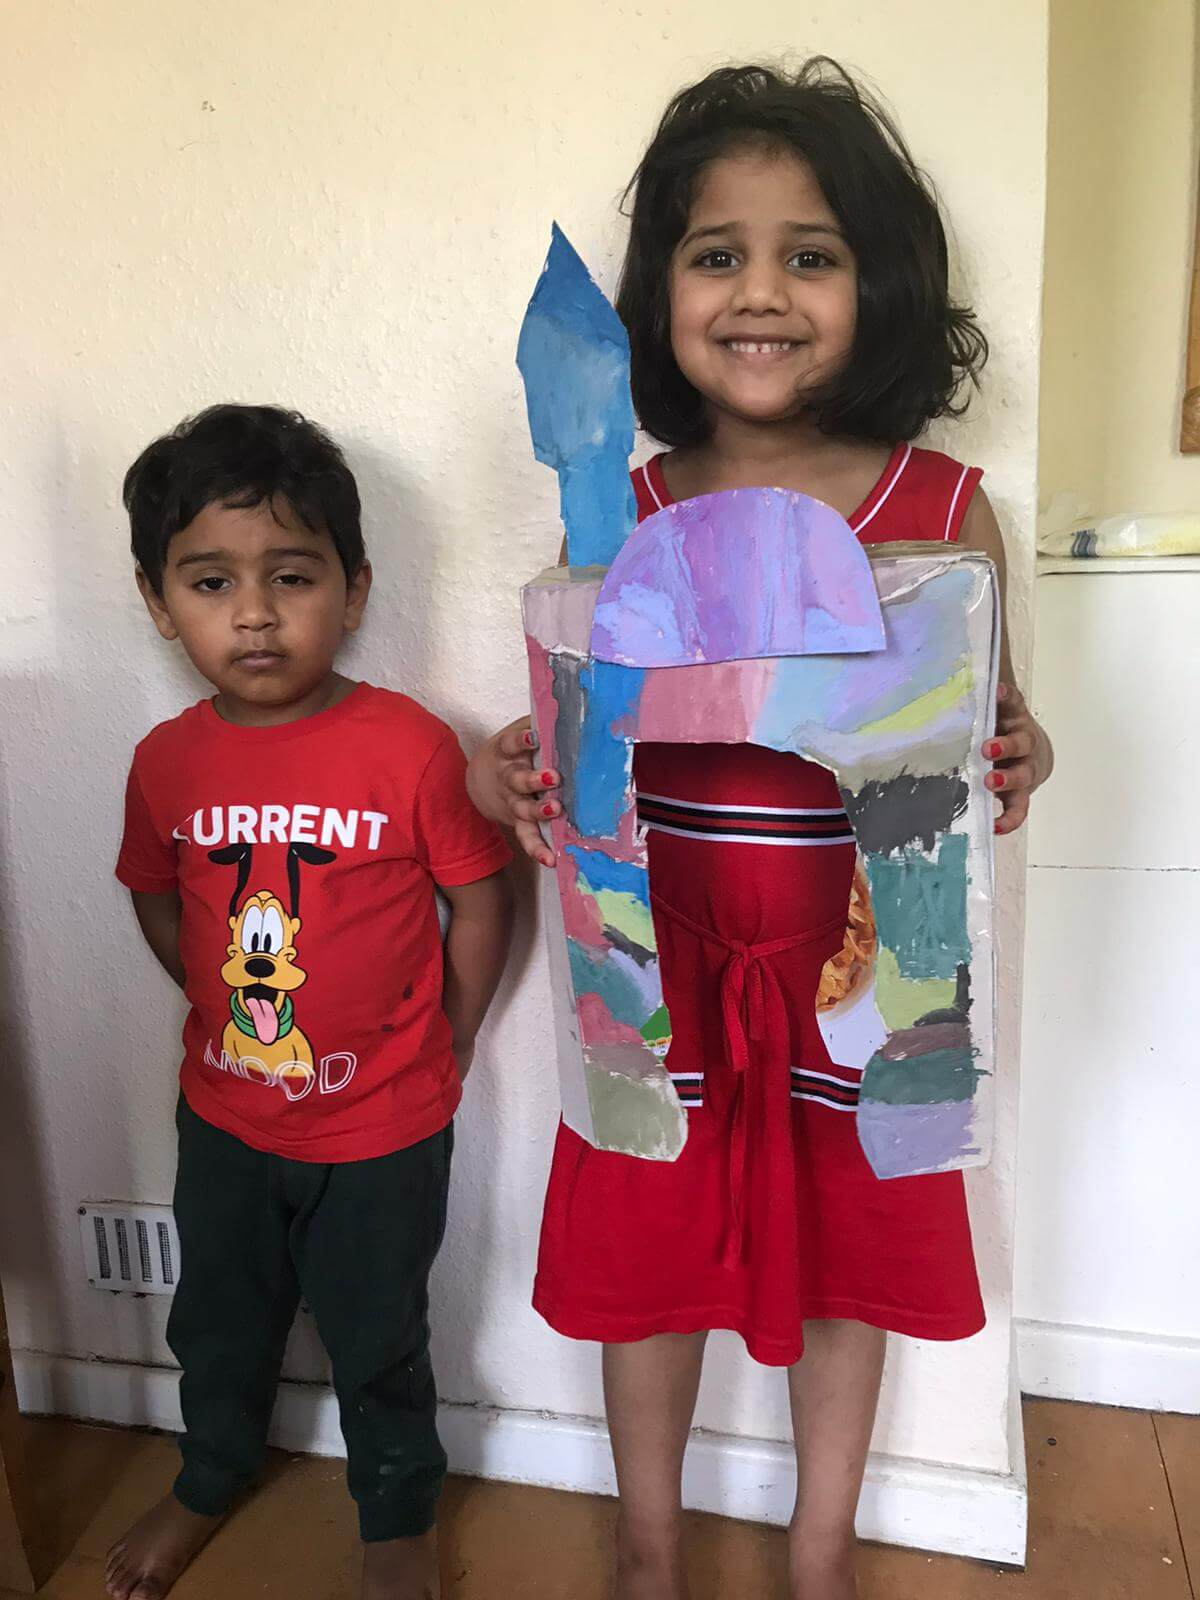 02: During Ramadan under lockdown a brother and sister in Wales were unable to visit the mosque, so made their own at home out of cardboard boxes